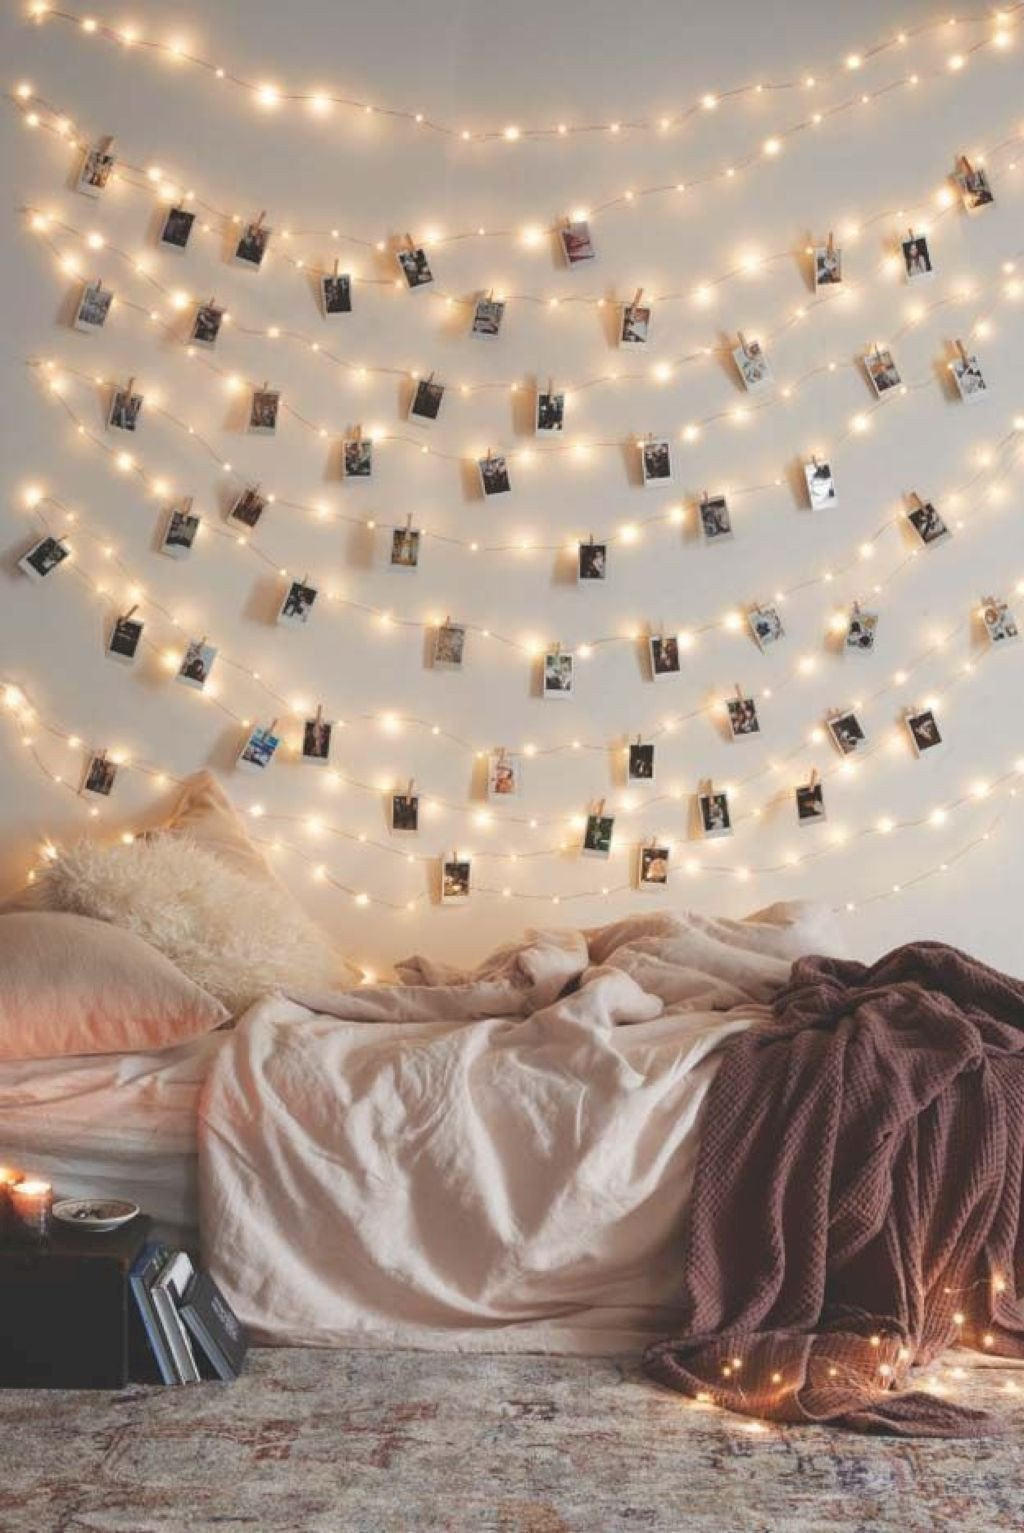 Best String Light for Bedroom Lovely Awesome 41 Simple Diy Home Decor Ideas Decor Diy Home